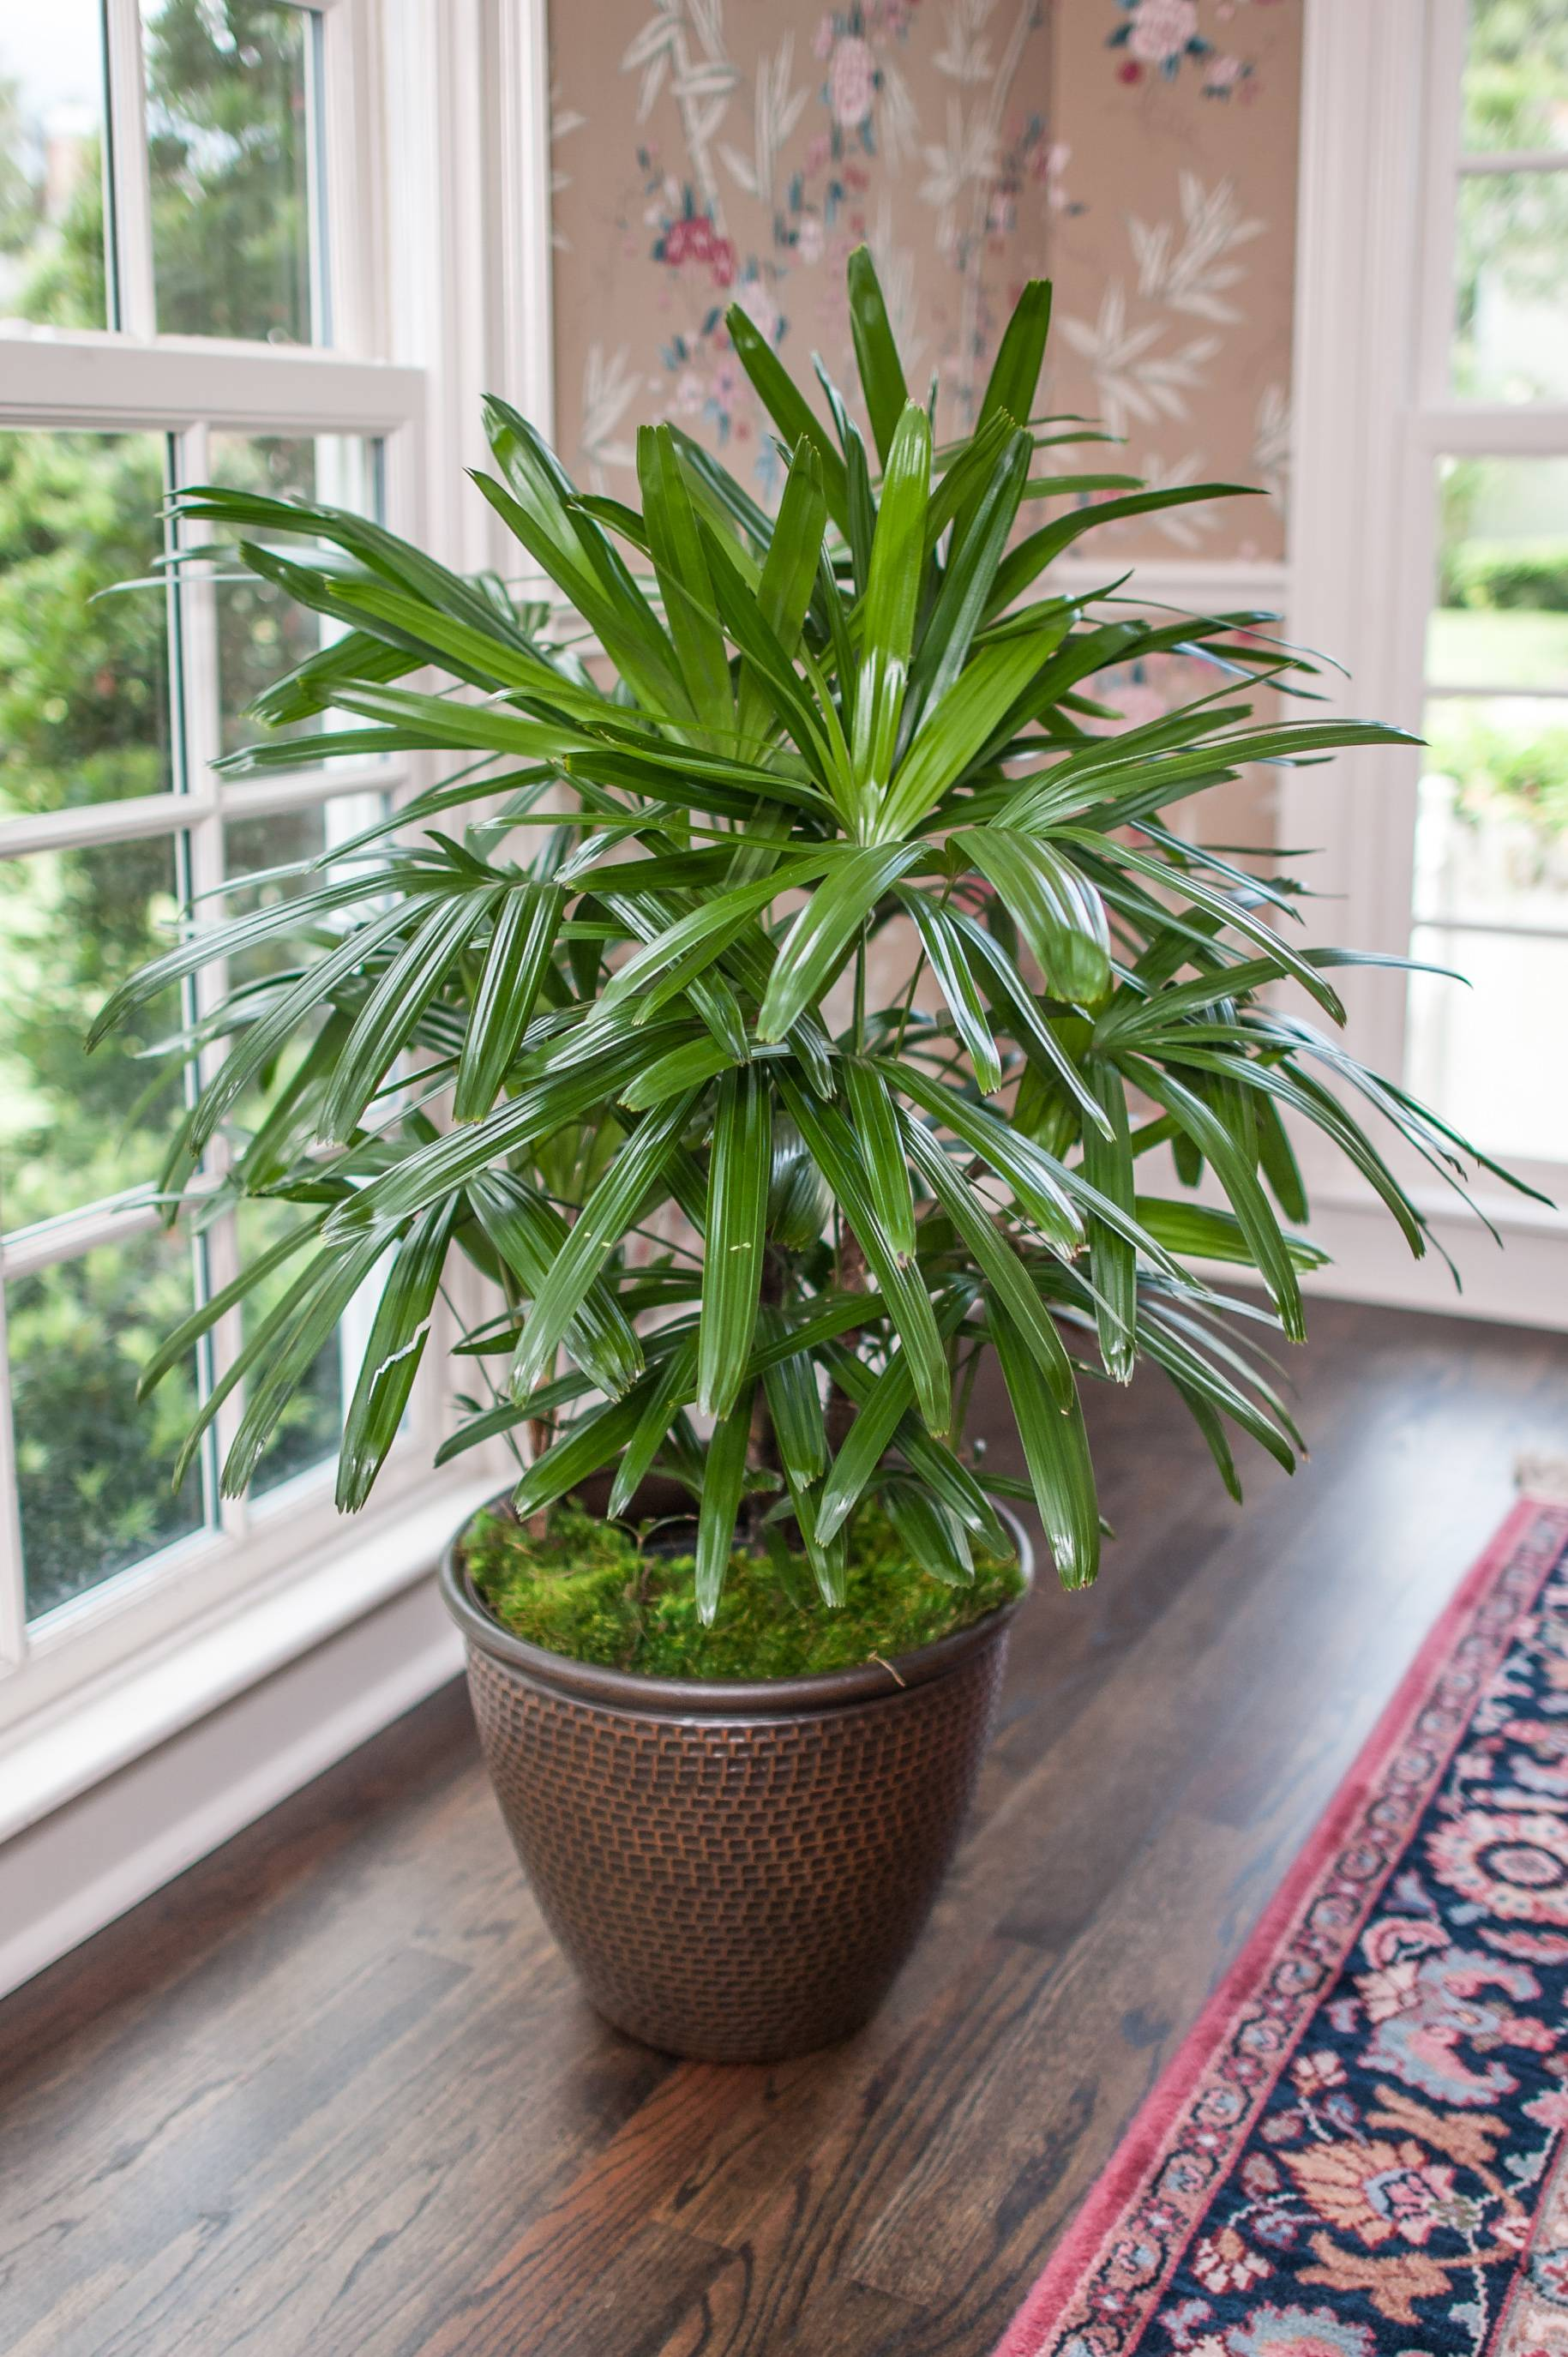 Florida Grown Rhapis Palm in a living room